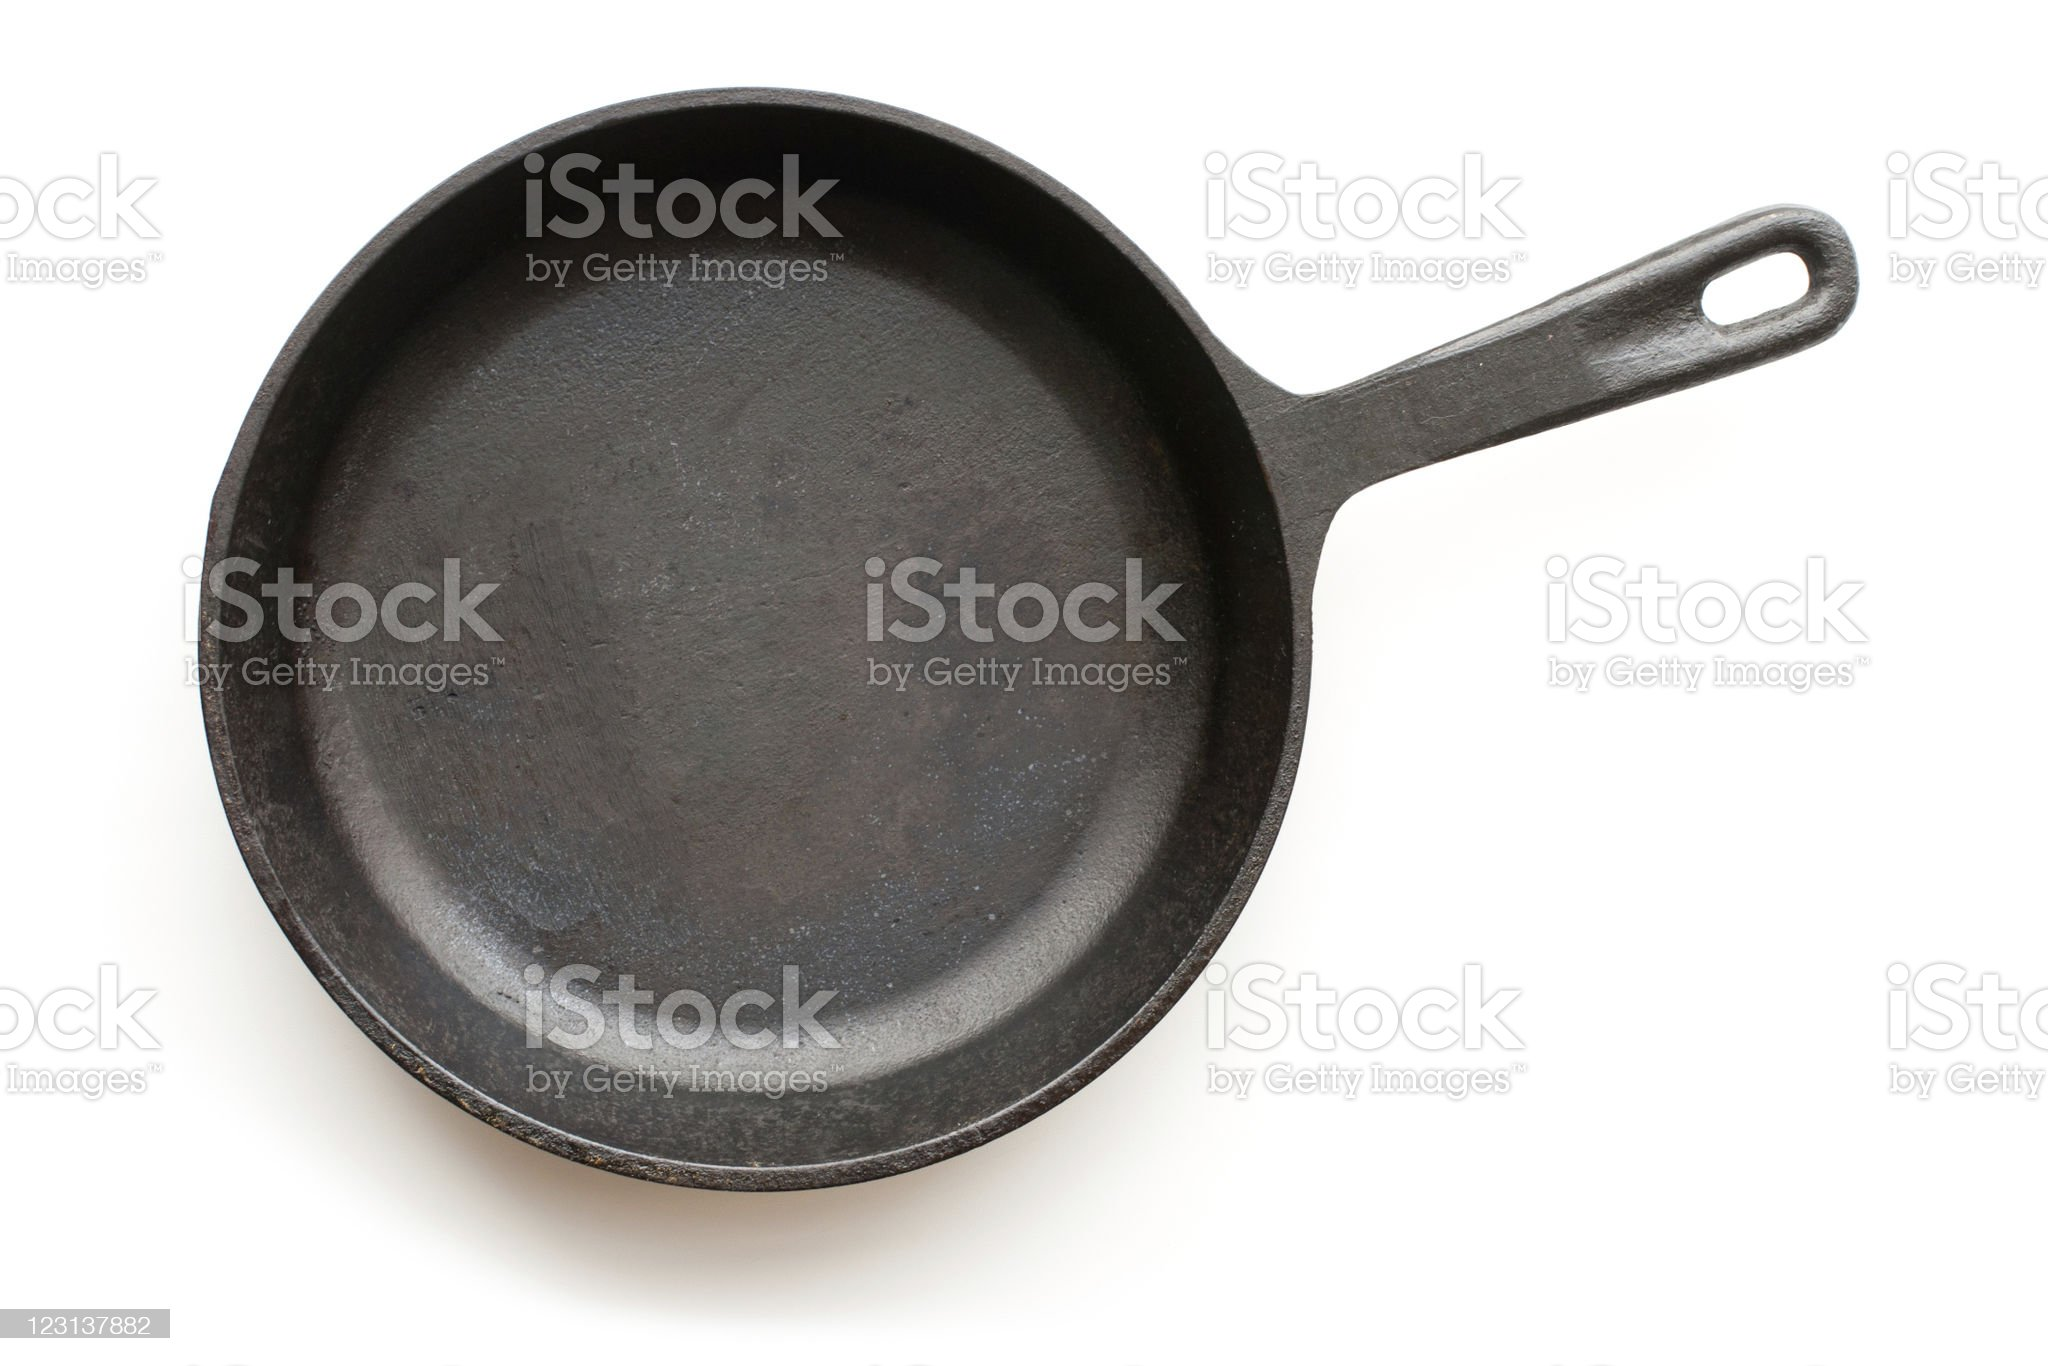 A cast-iron frying pan set against a white background royalty-free stock photo